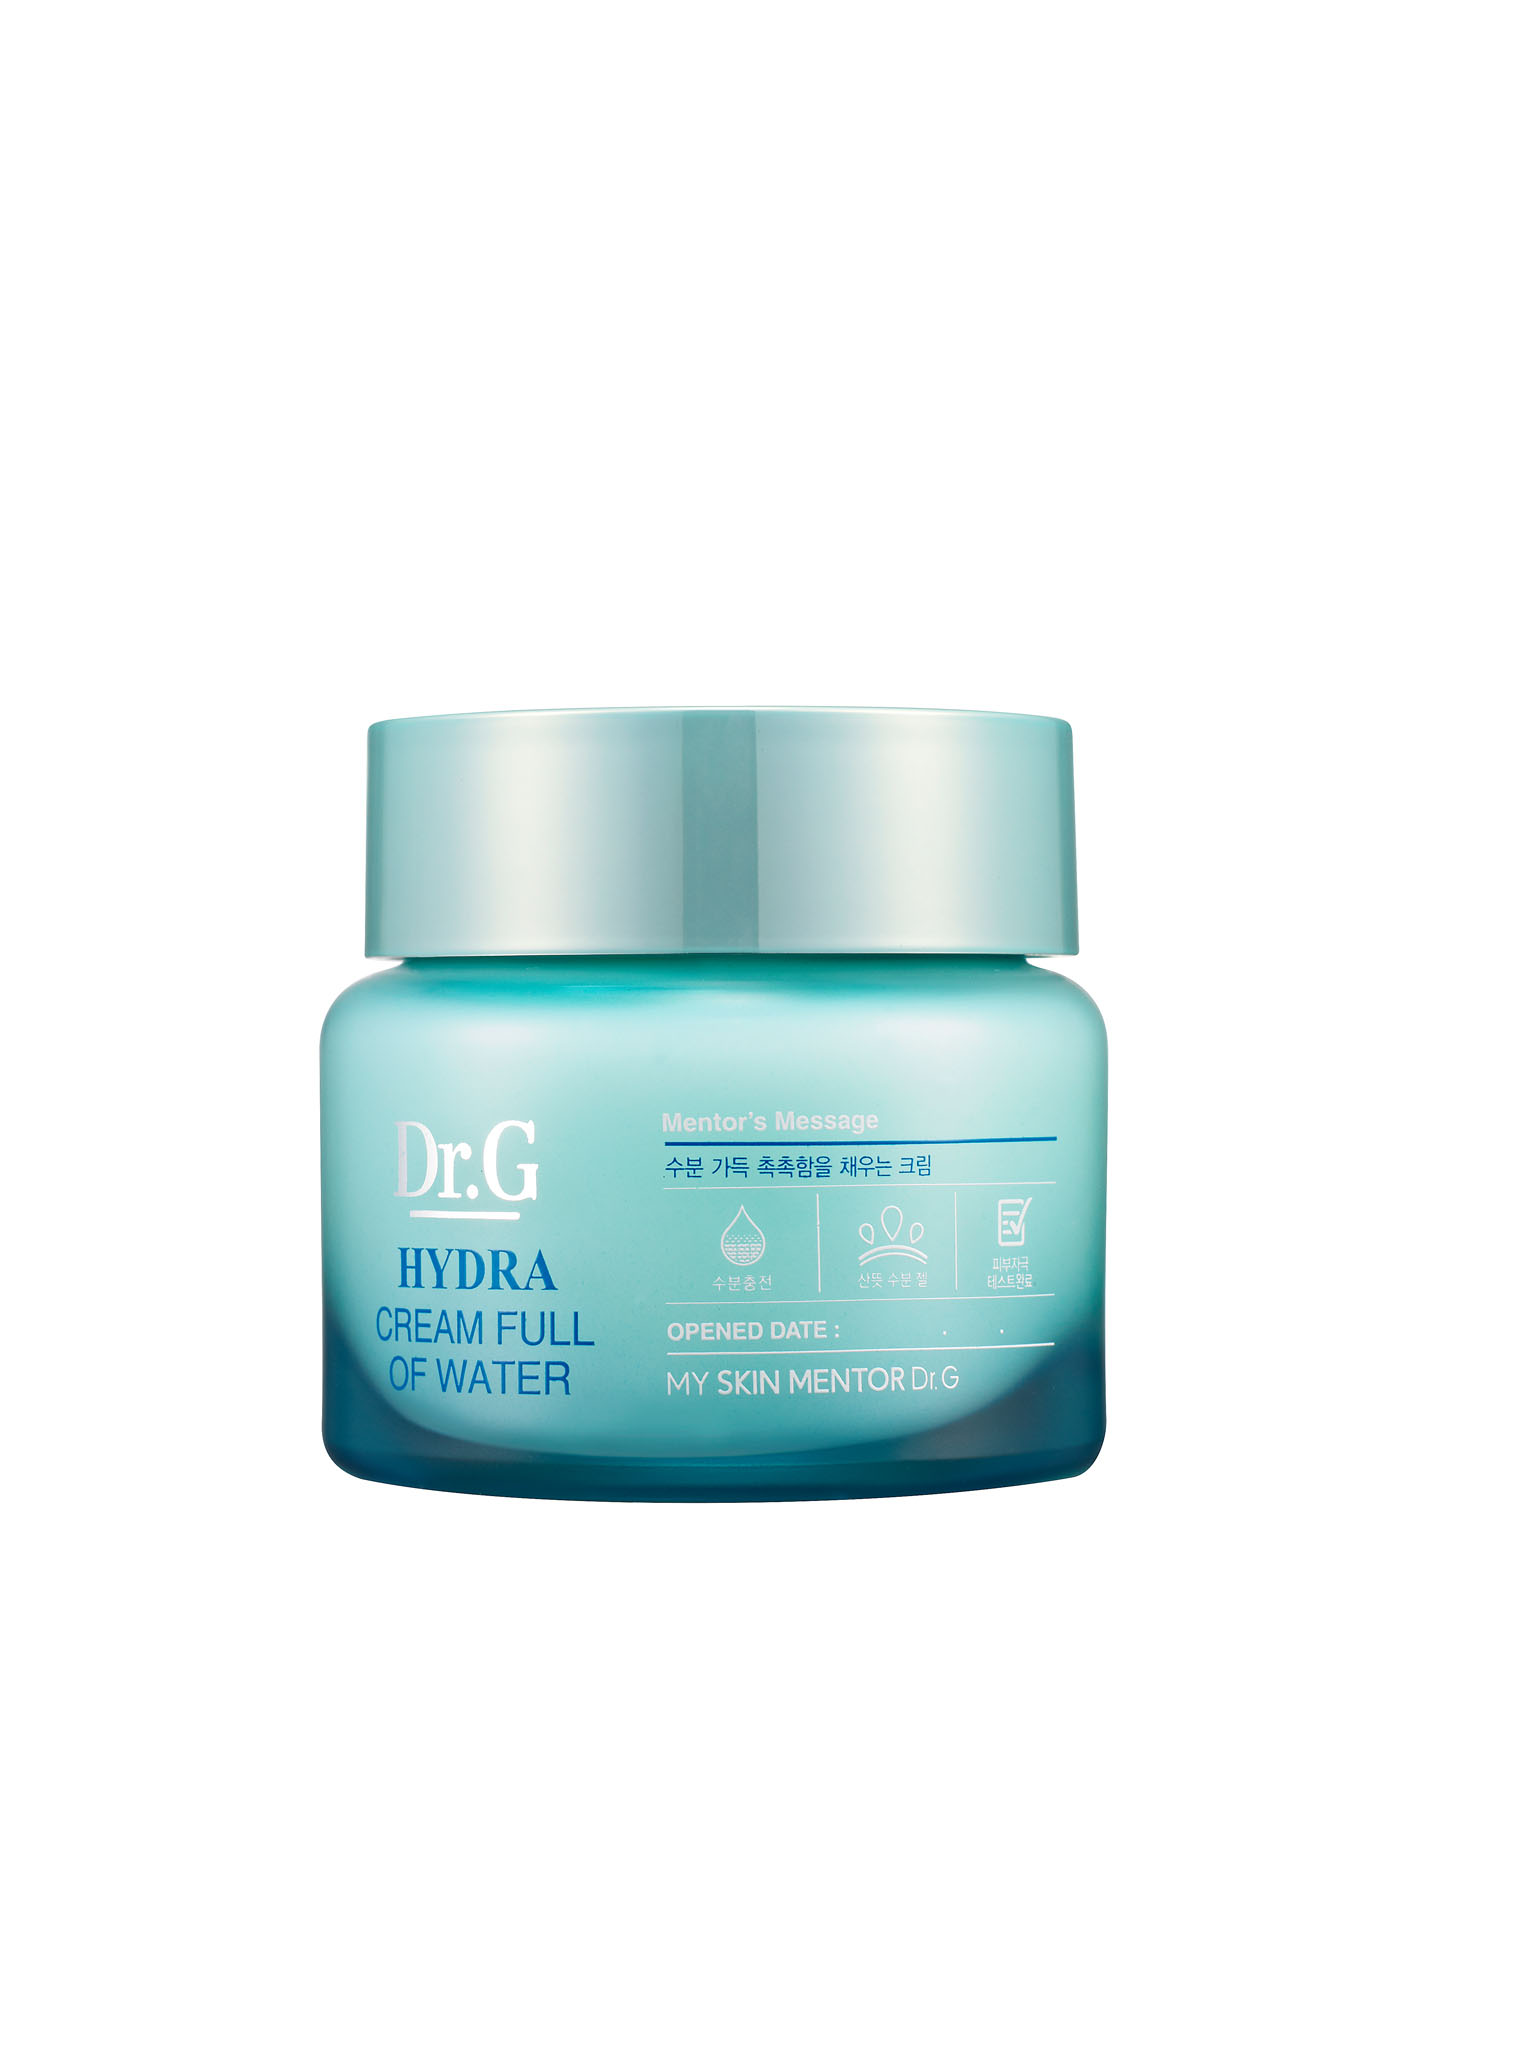 Hydra cream full of water dr g